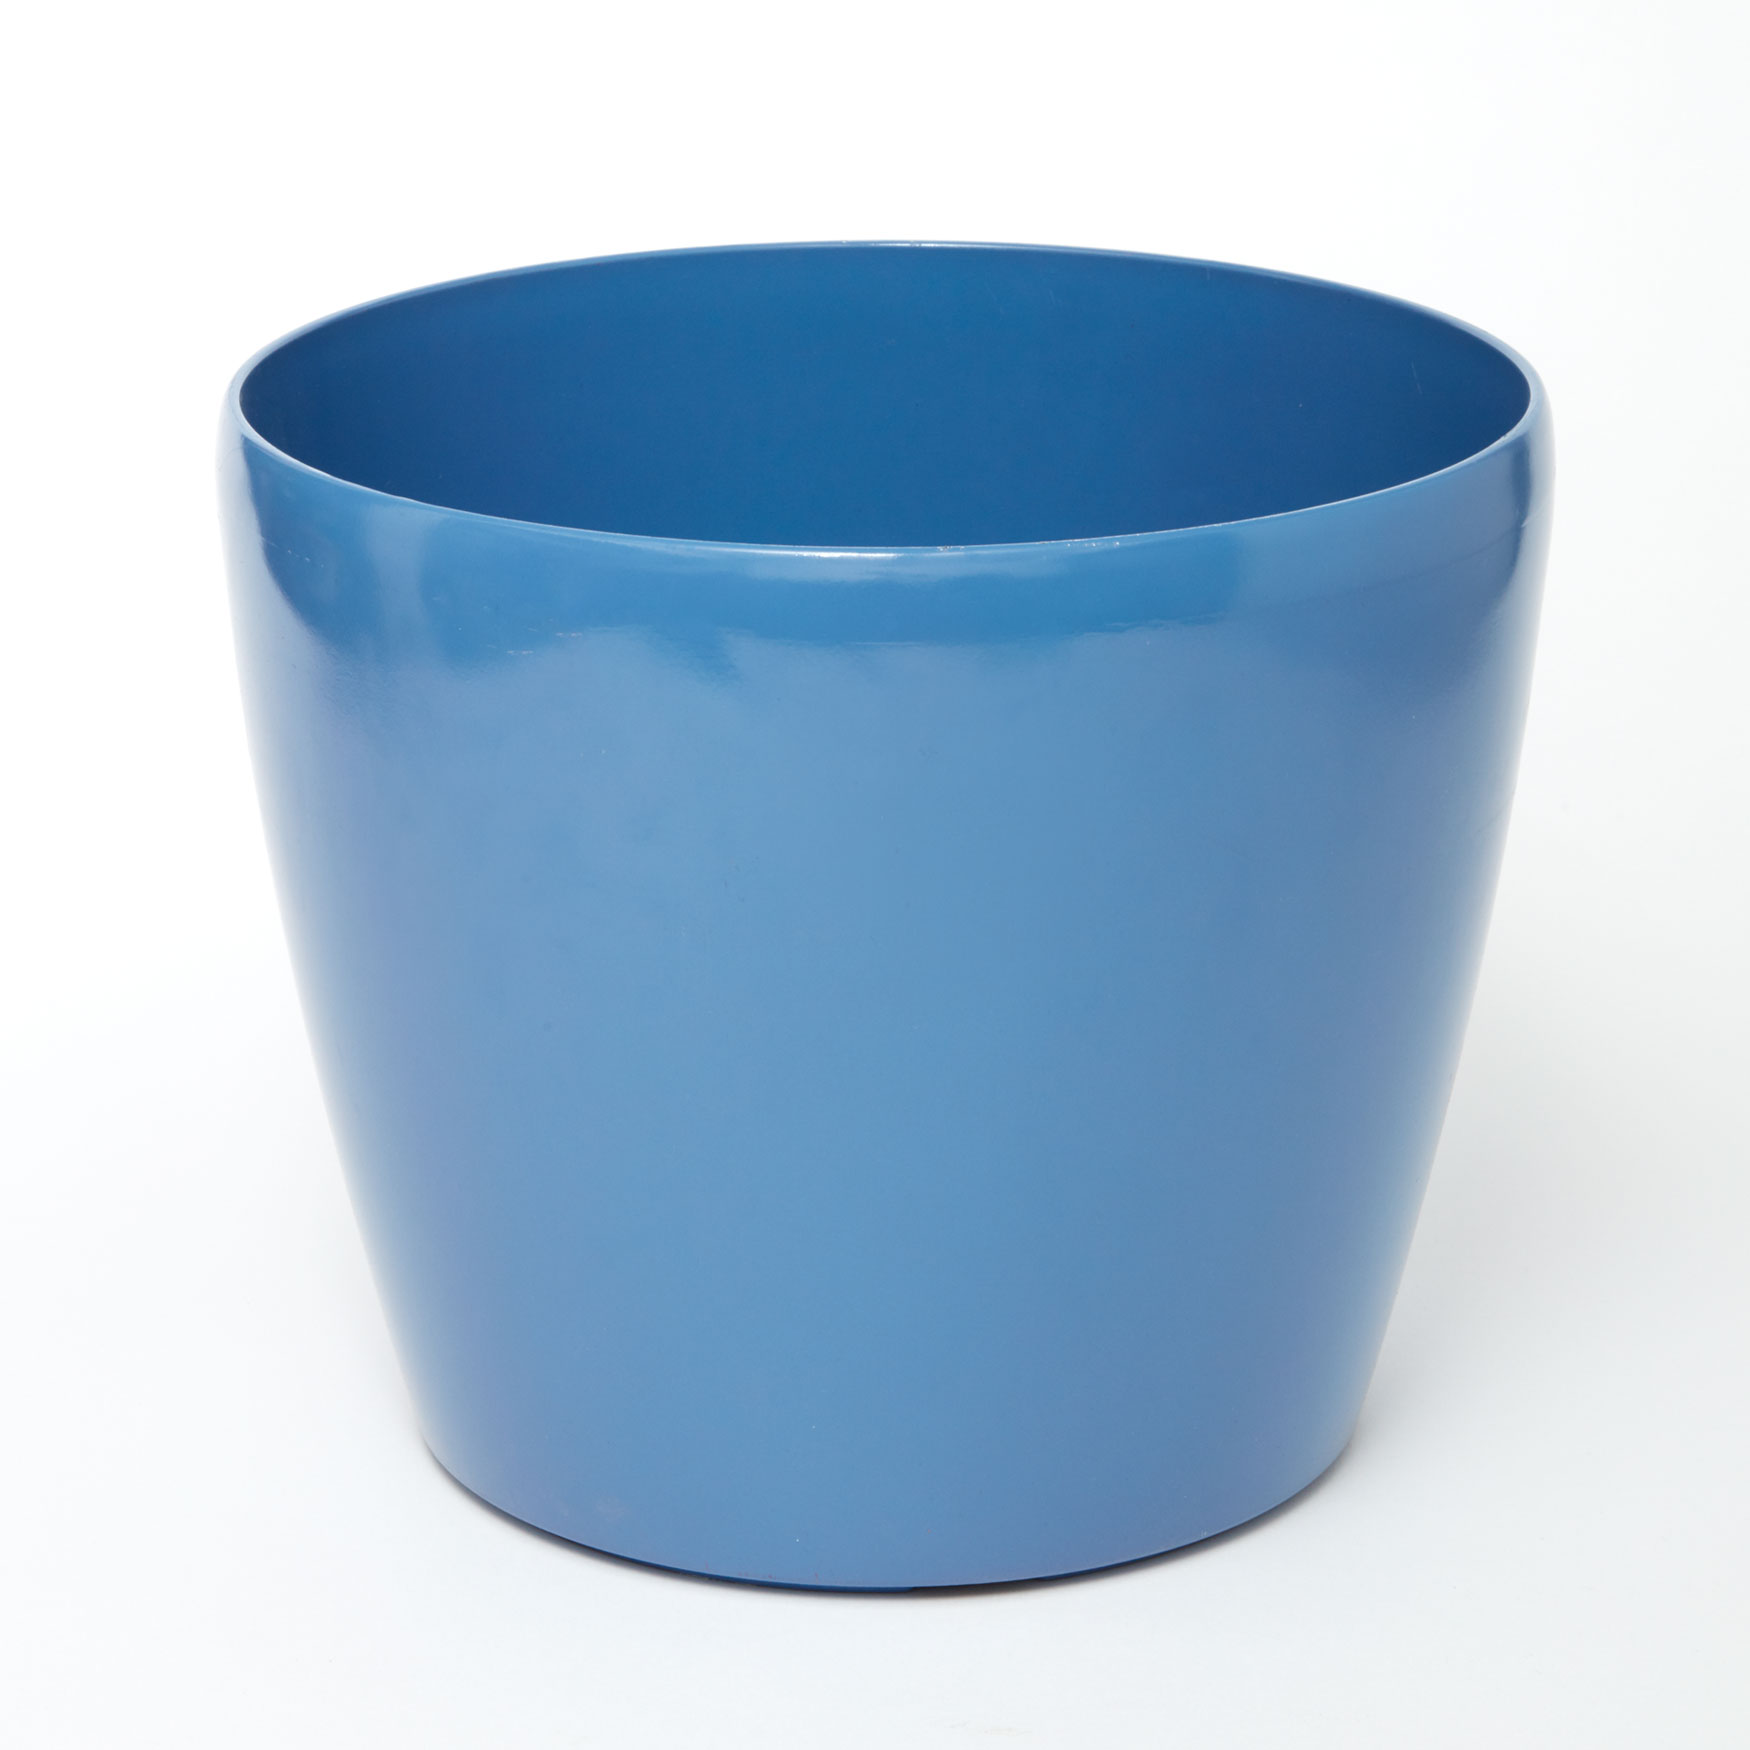 Short Self-Watering Planter, POOL BLUE